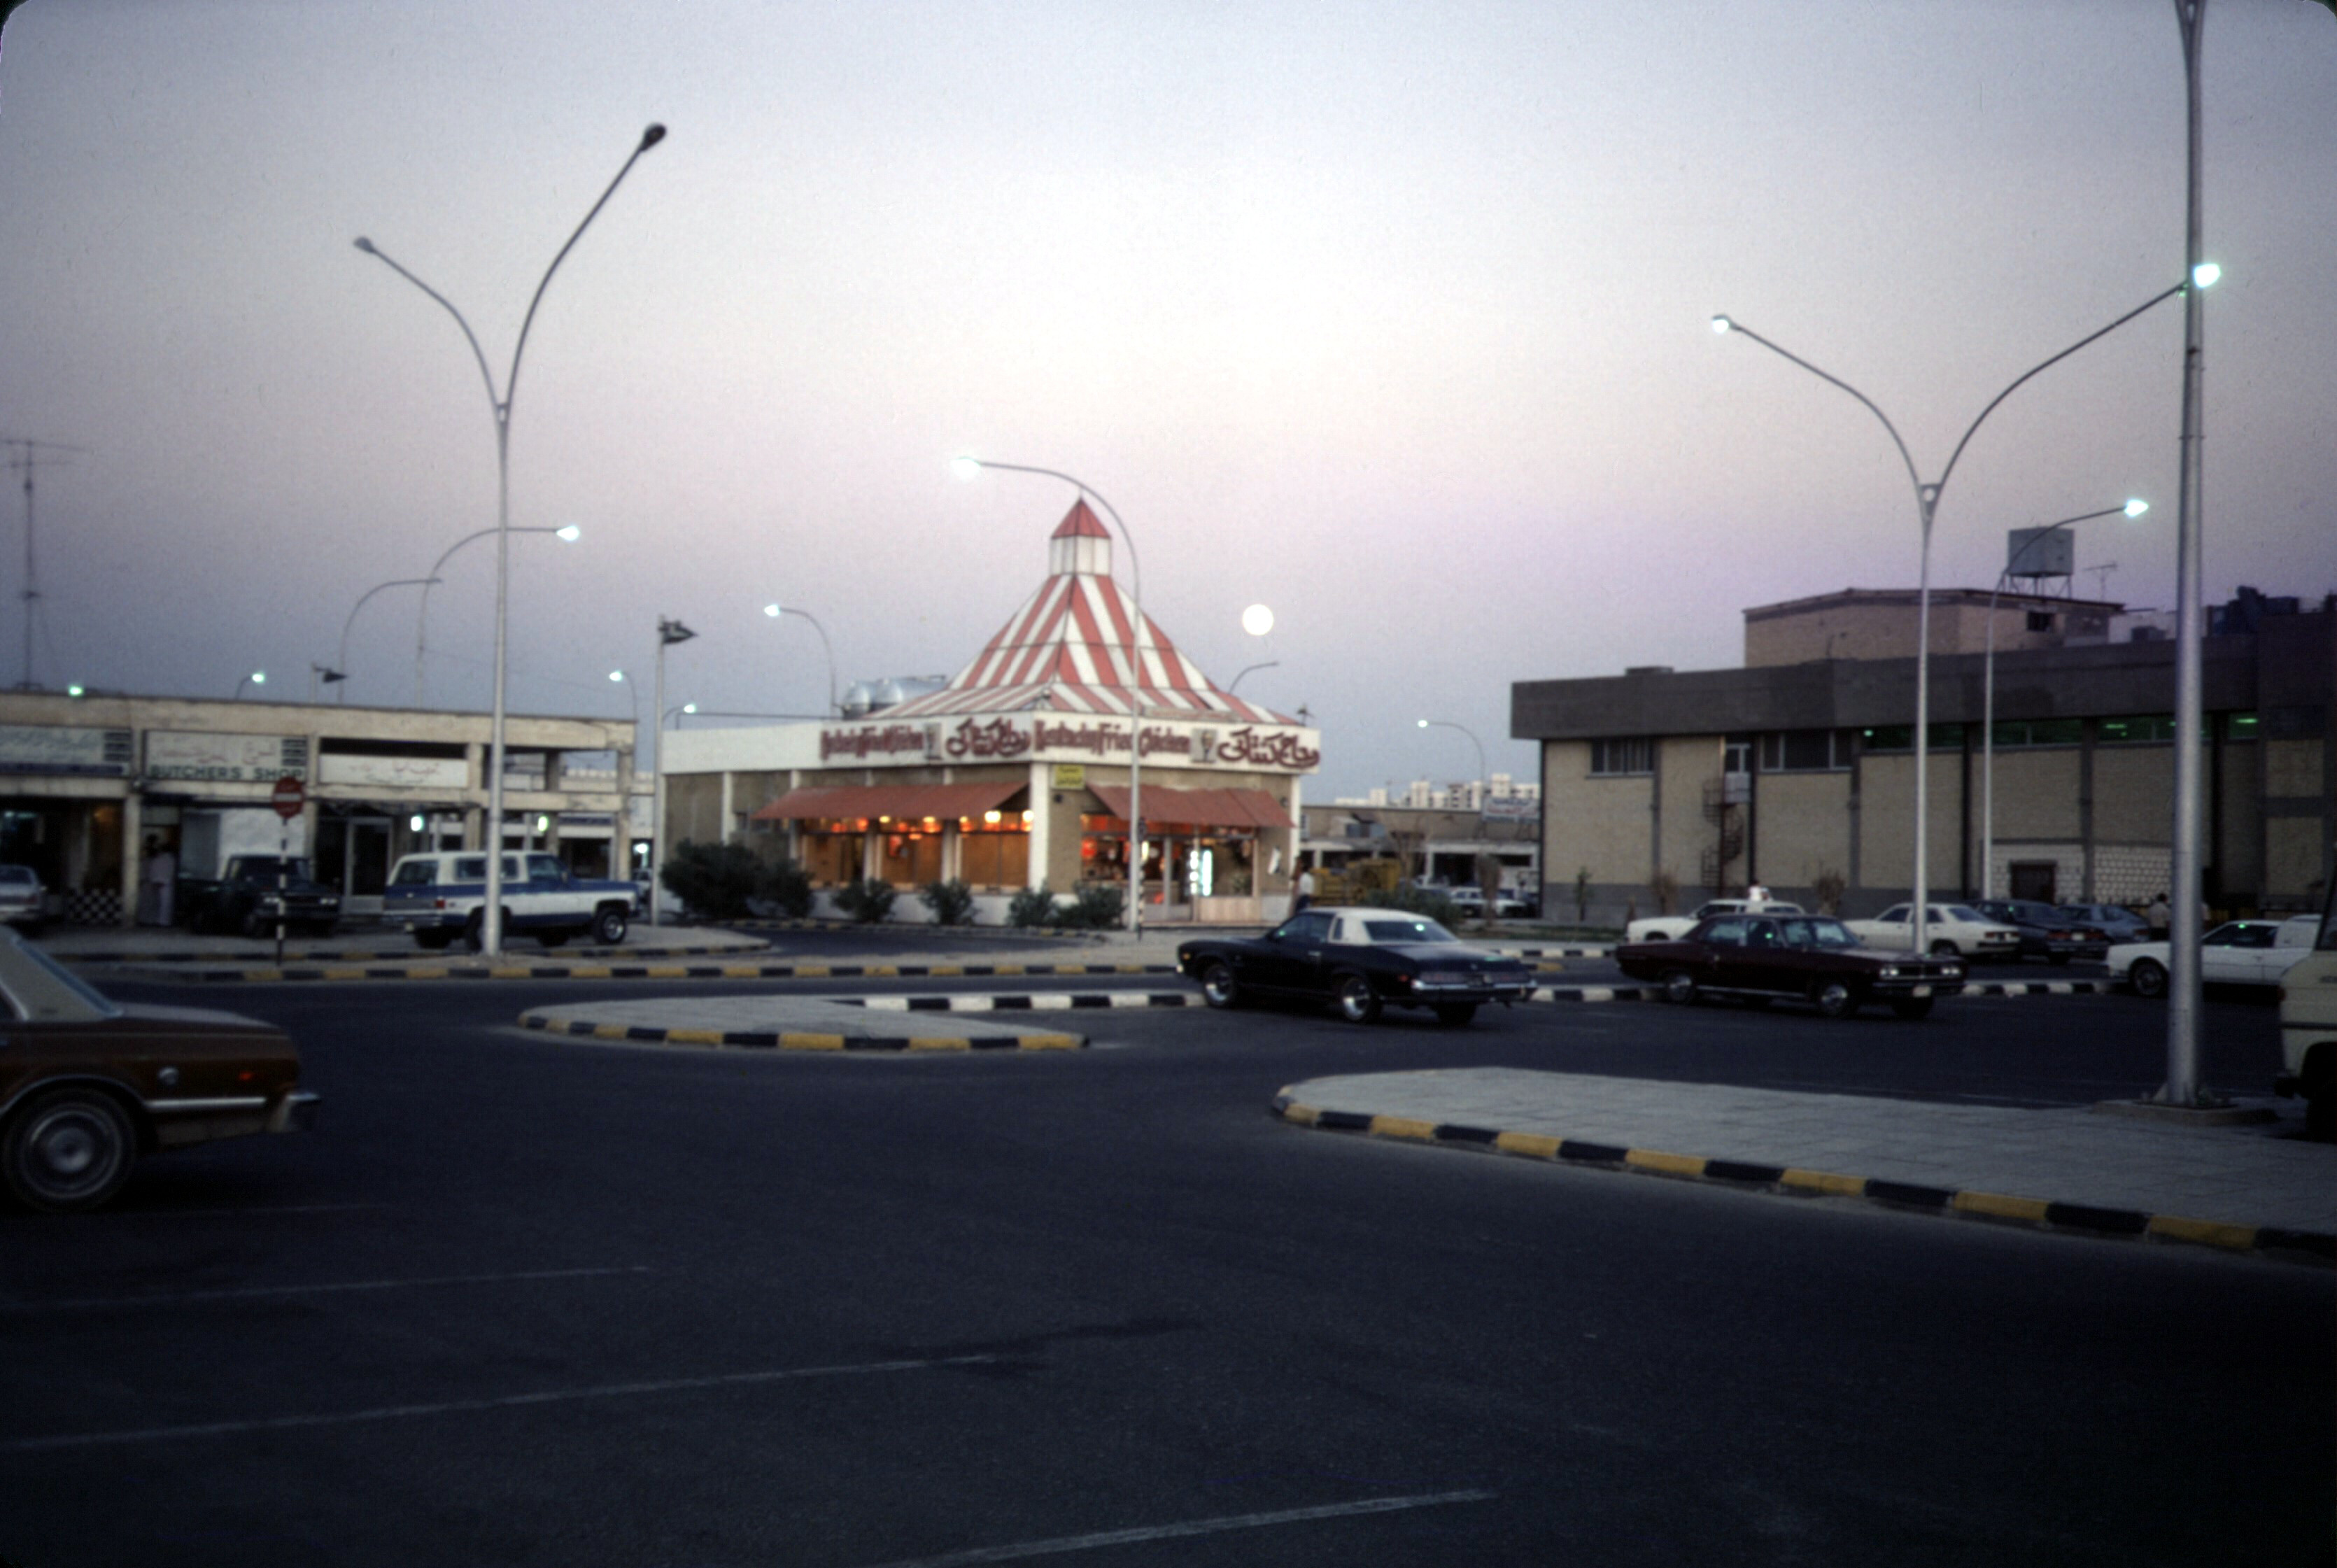 KFC_restaurant_Kuwait_City,_1980.jpg